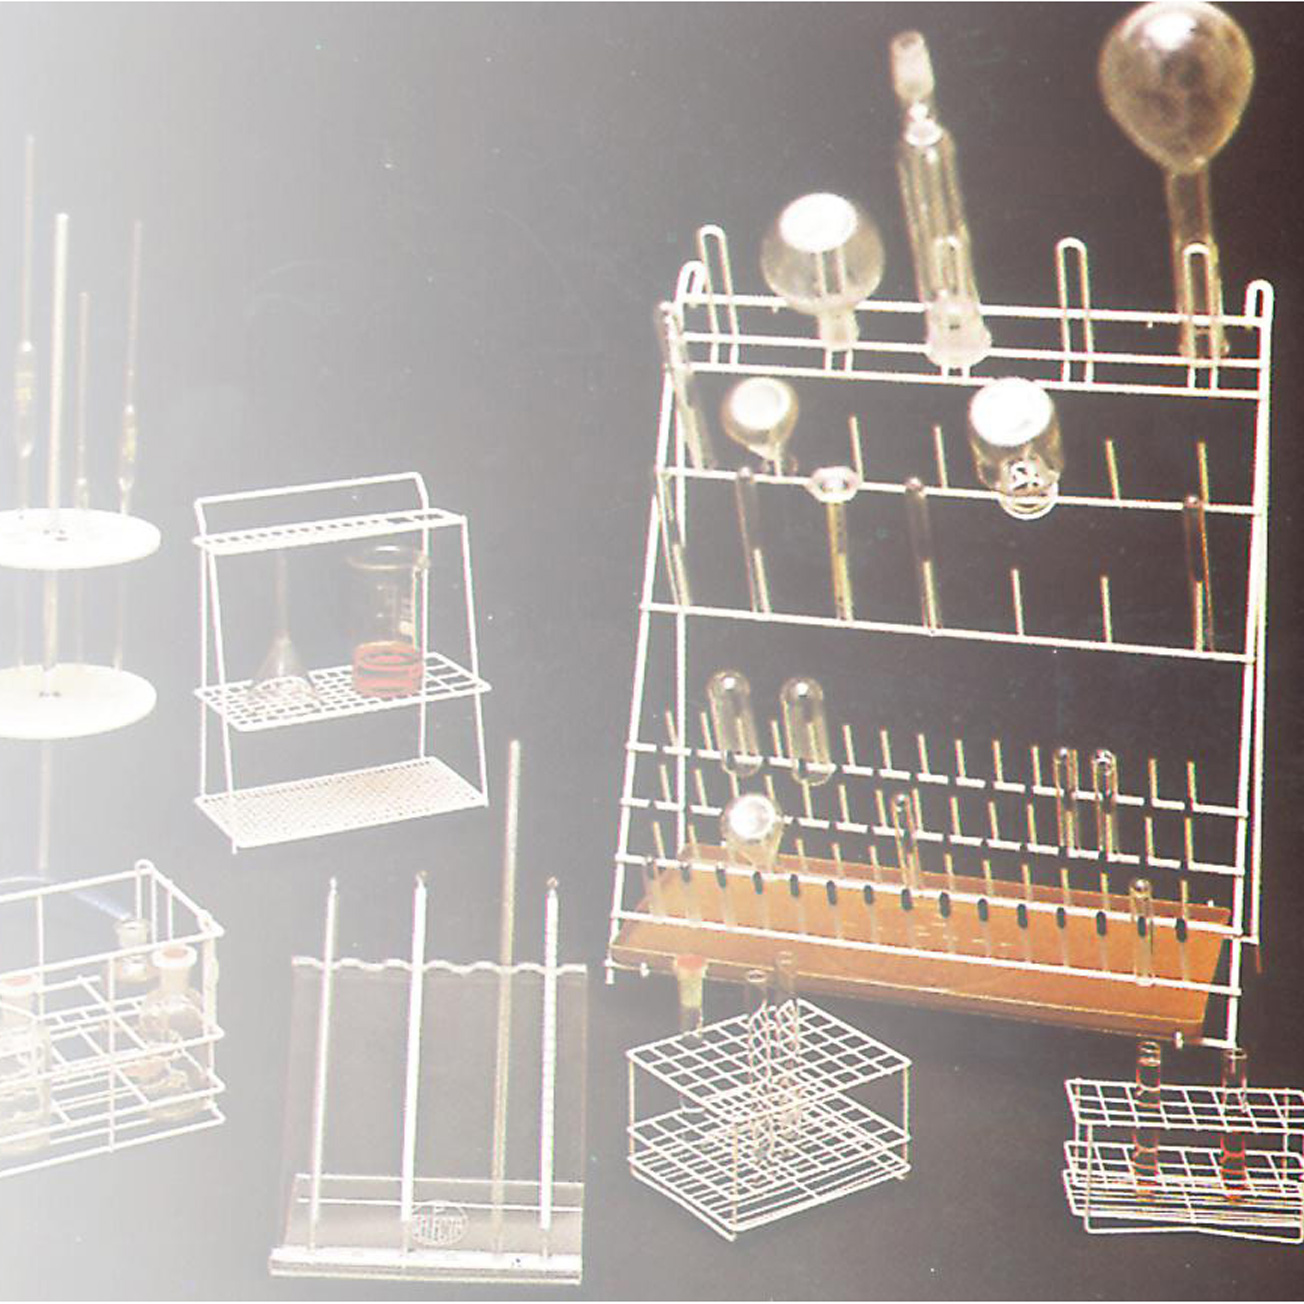 Racks, baskets and storage for tubs, pipettes and flasks